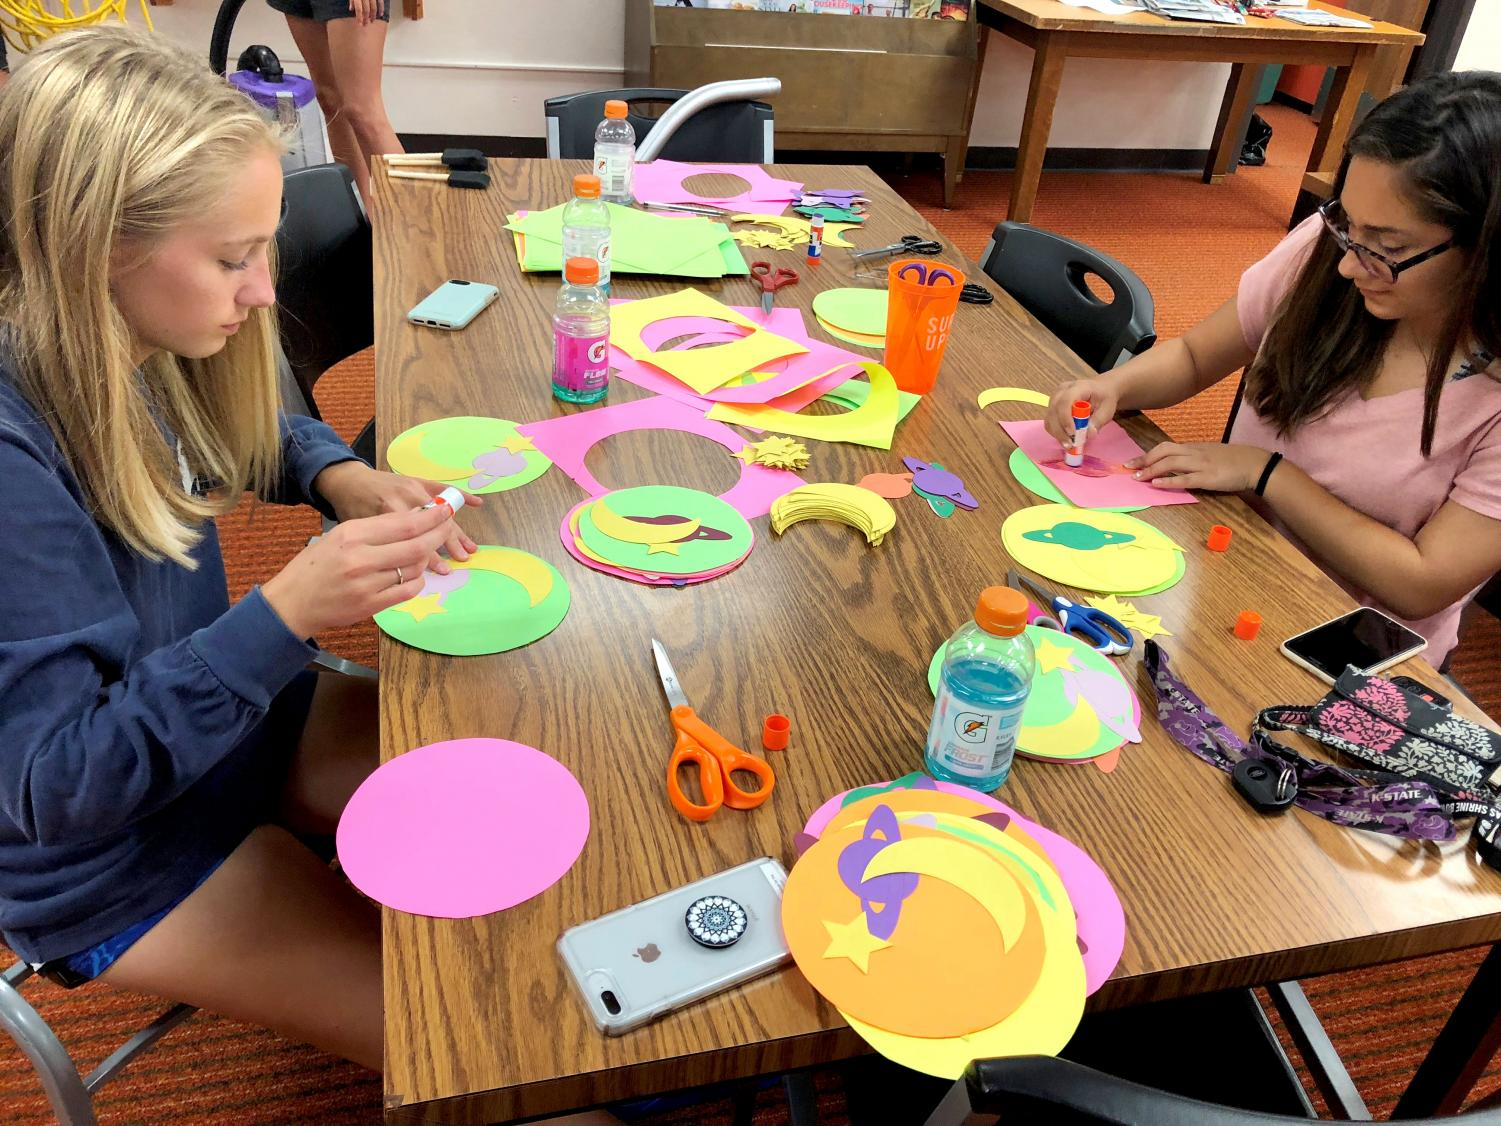 Students Claire Shippy and Cristina Leos work on Homecoming decorations.